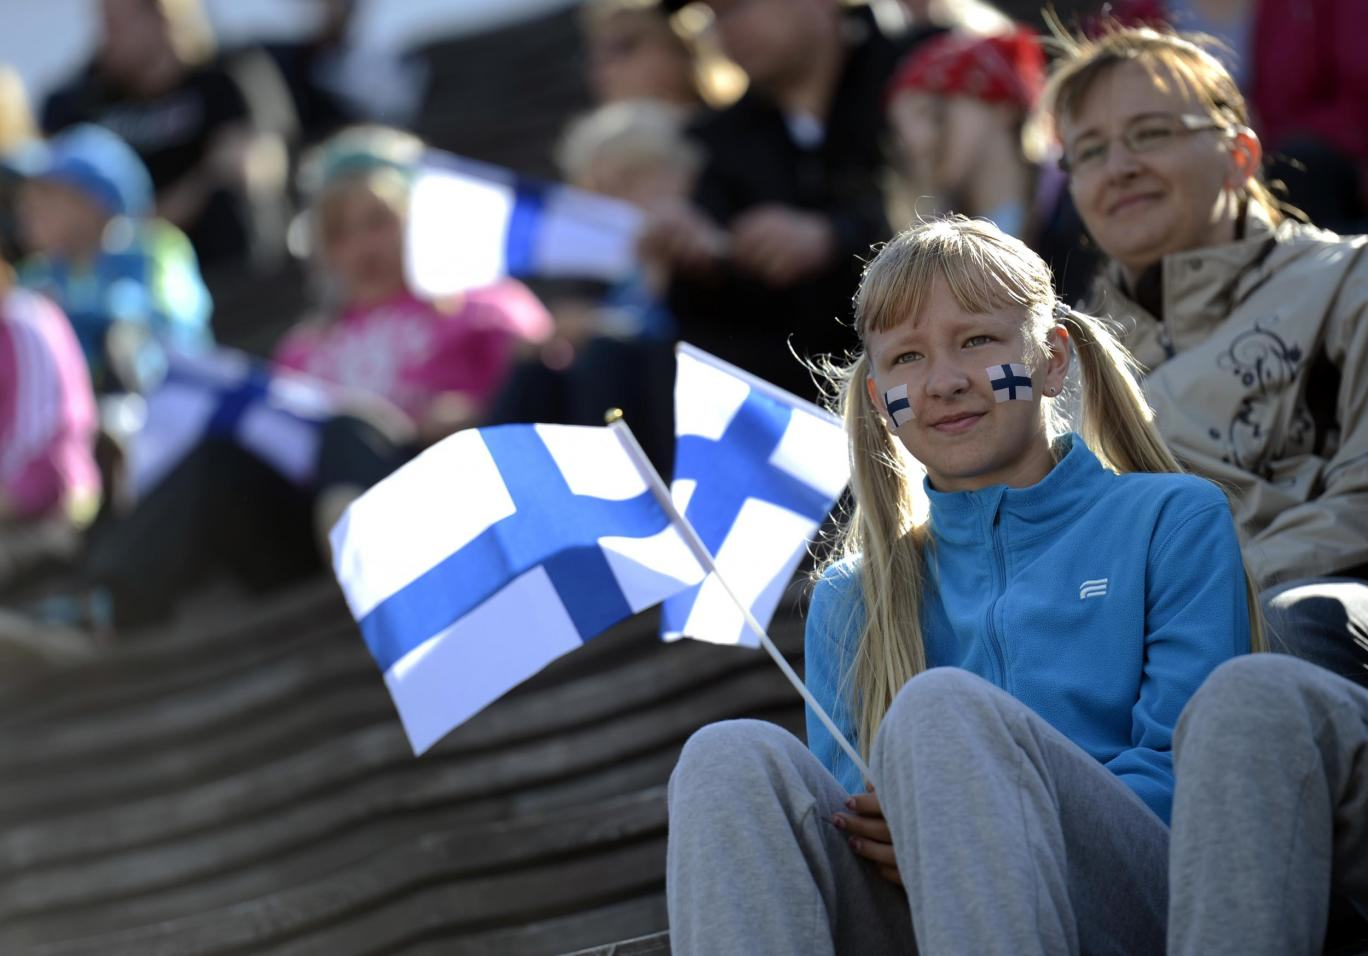 Finland Plans To Scrap Benefits And Give Everyone 800 Euros Per Month finaldn